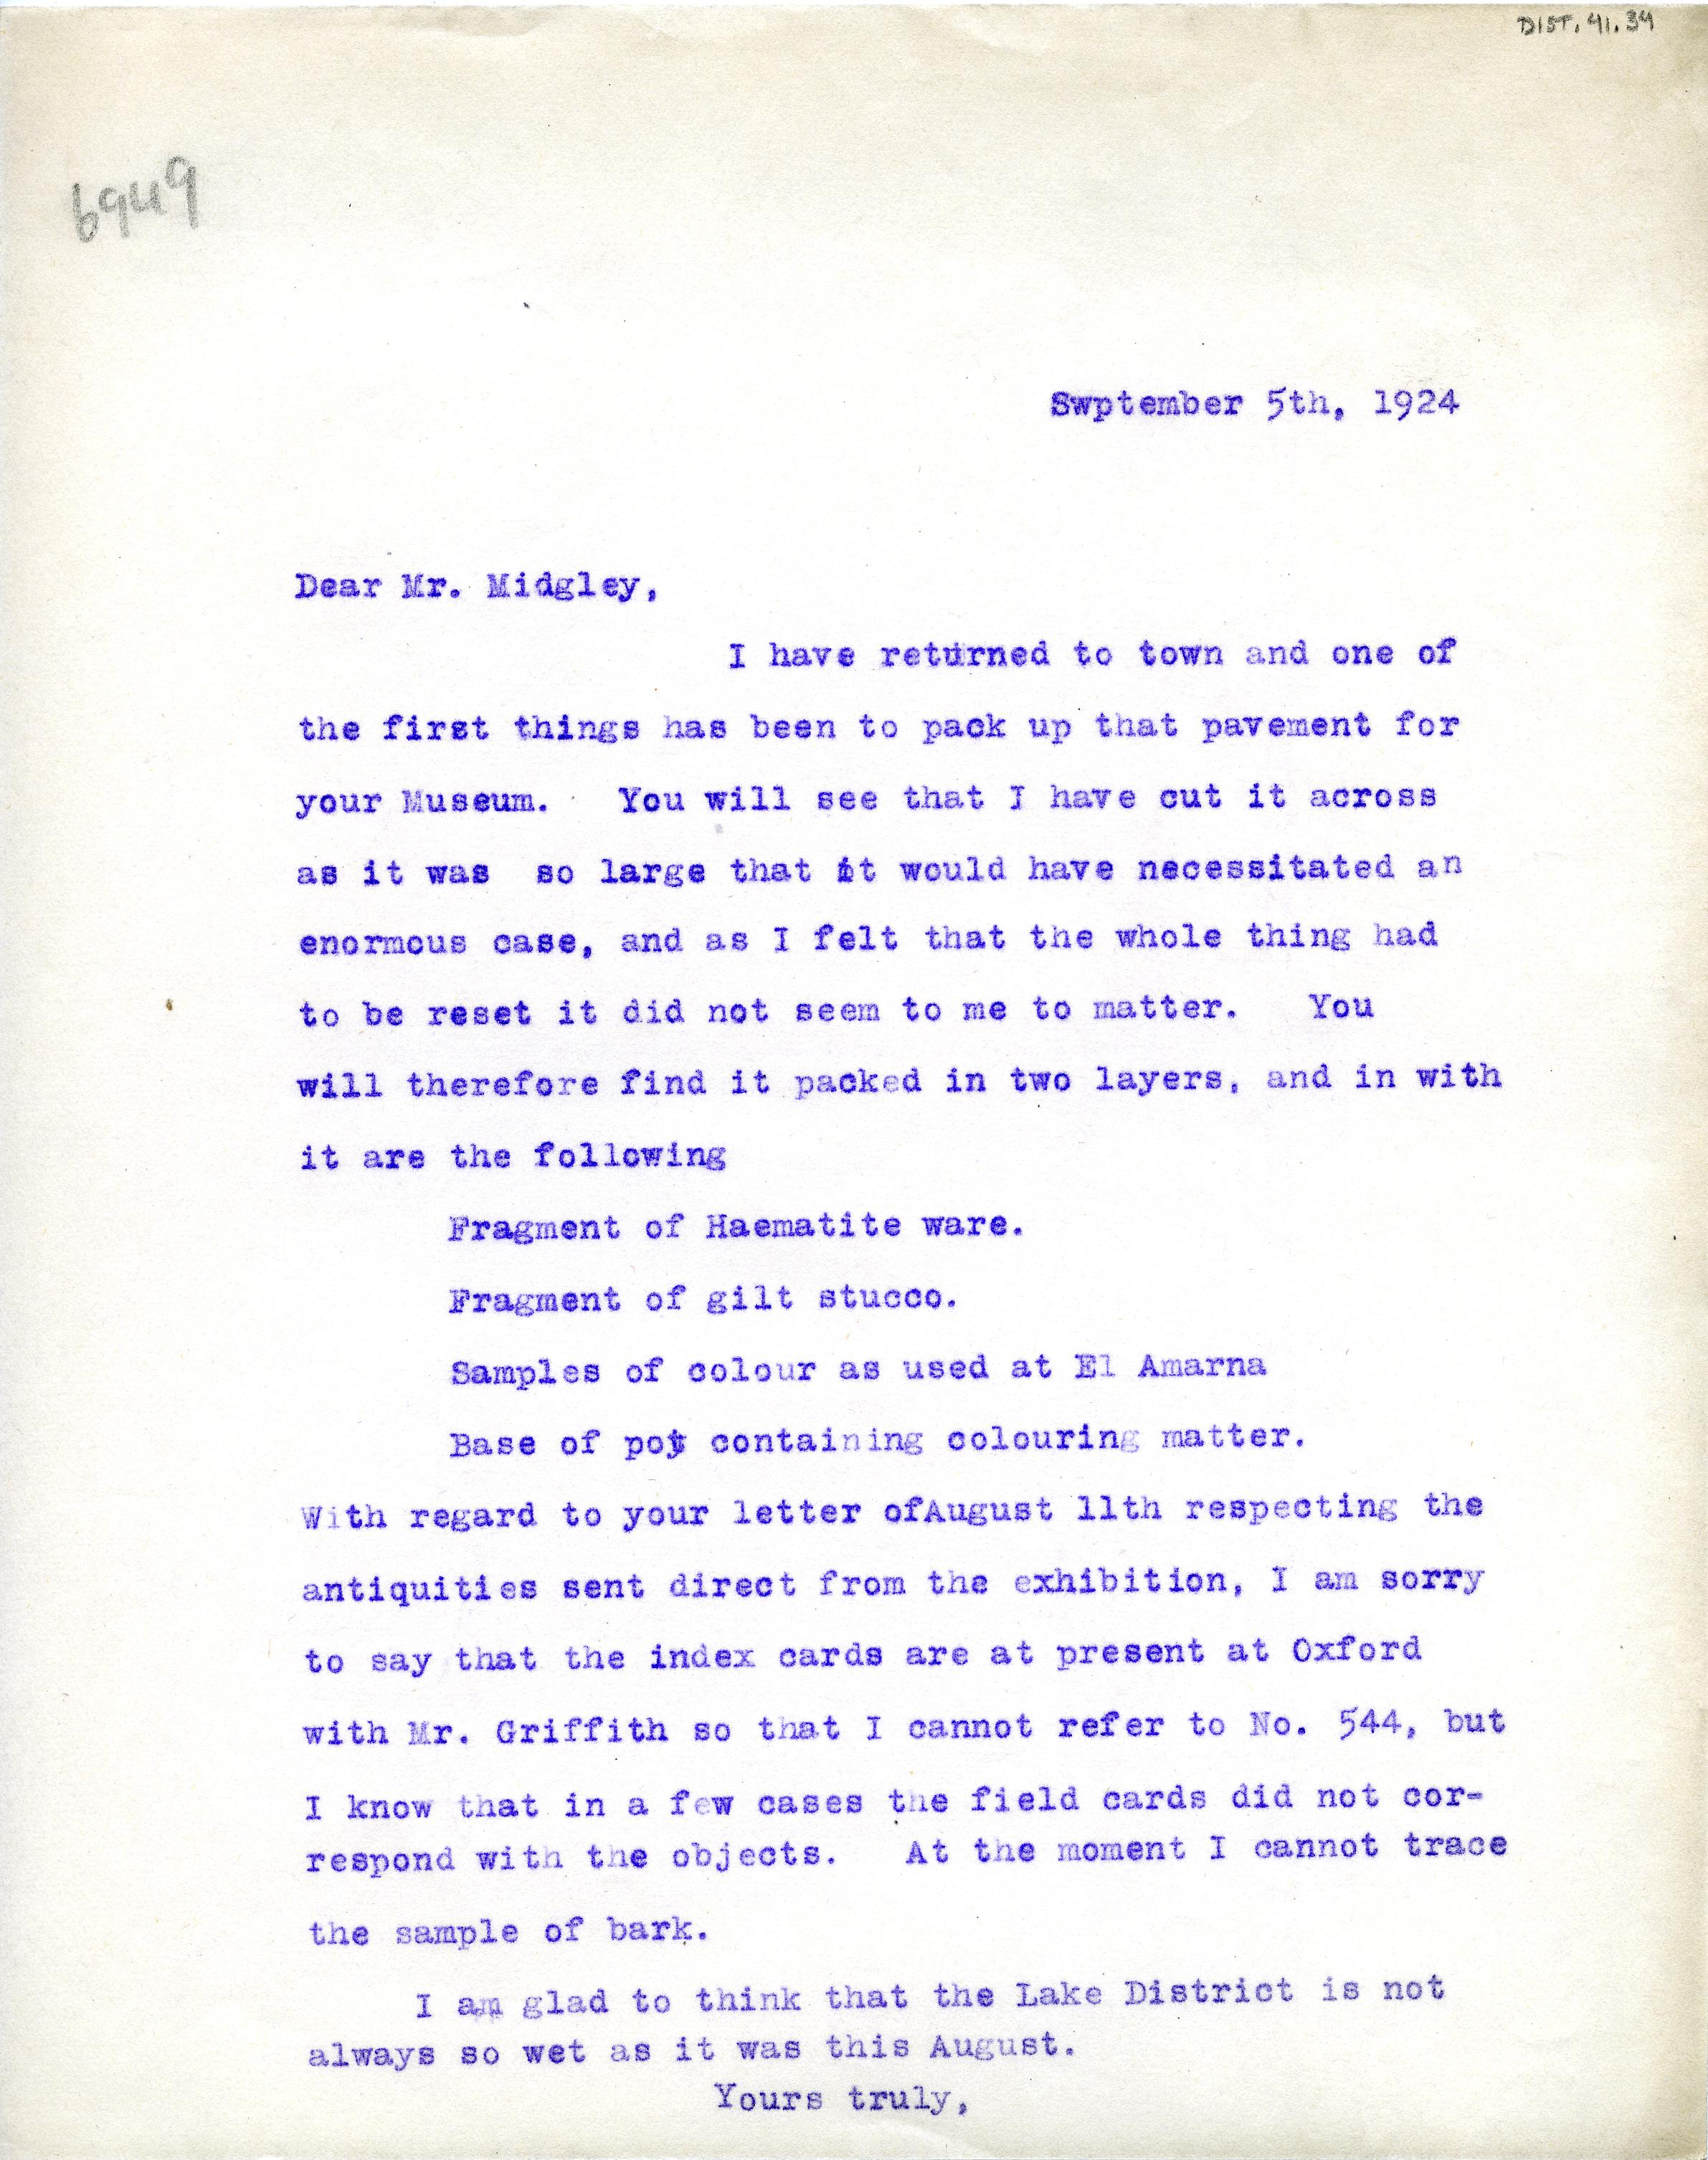 1922-76 Miscellaneous correspondence with museums DIST.41.34